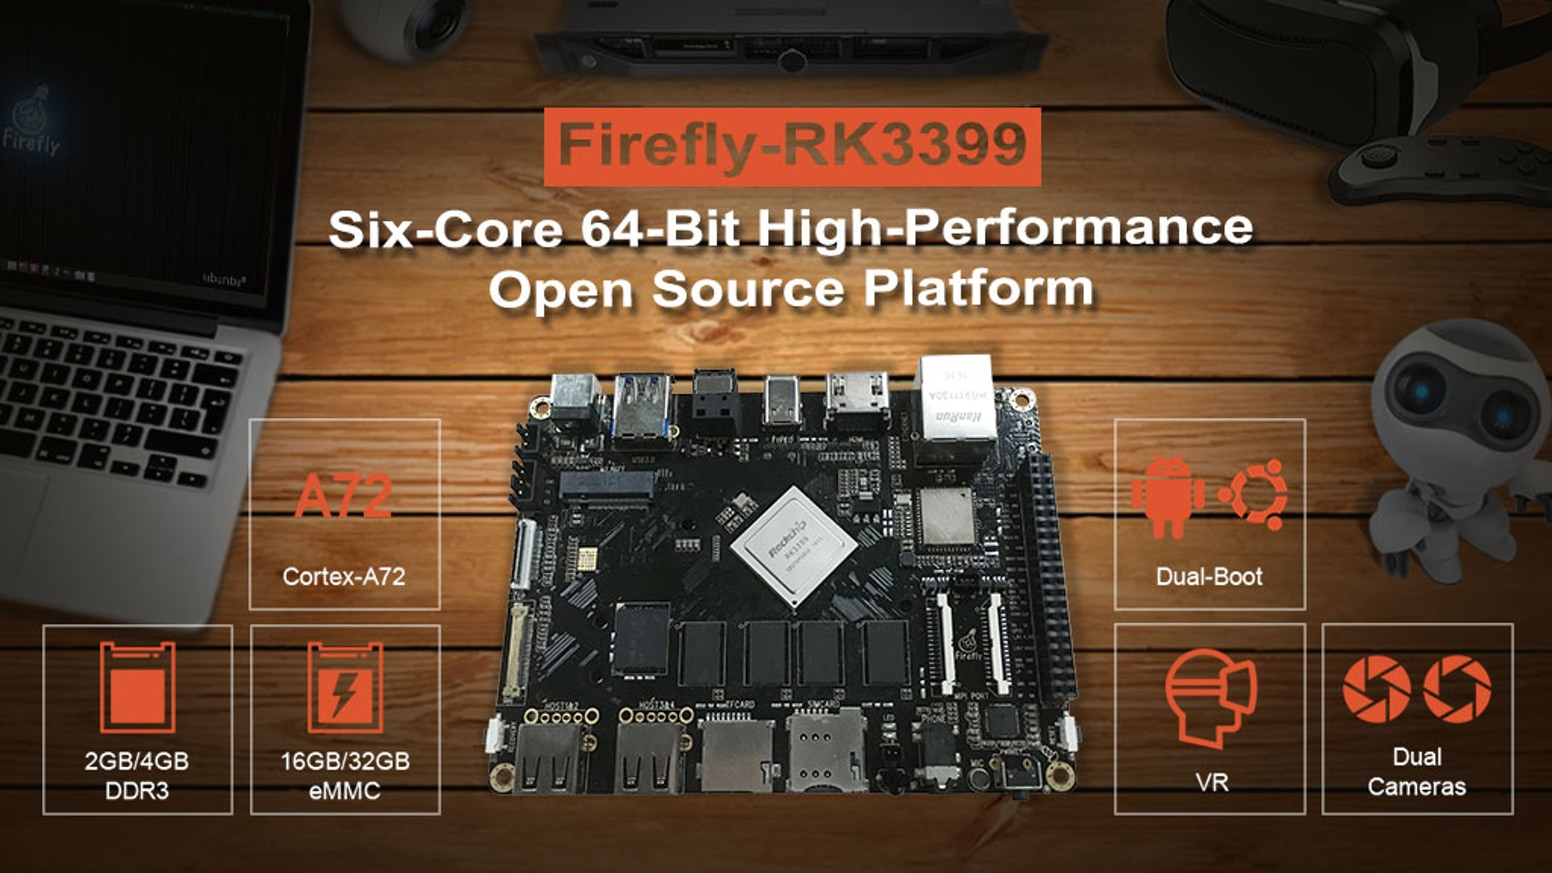 Firefly-RK3399:Six-Core 64-bit High-Performance Platform by